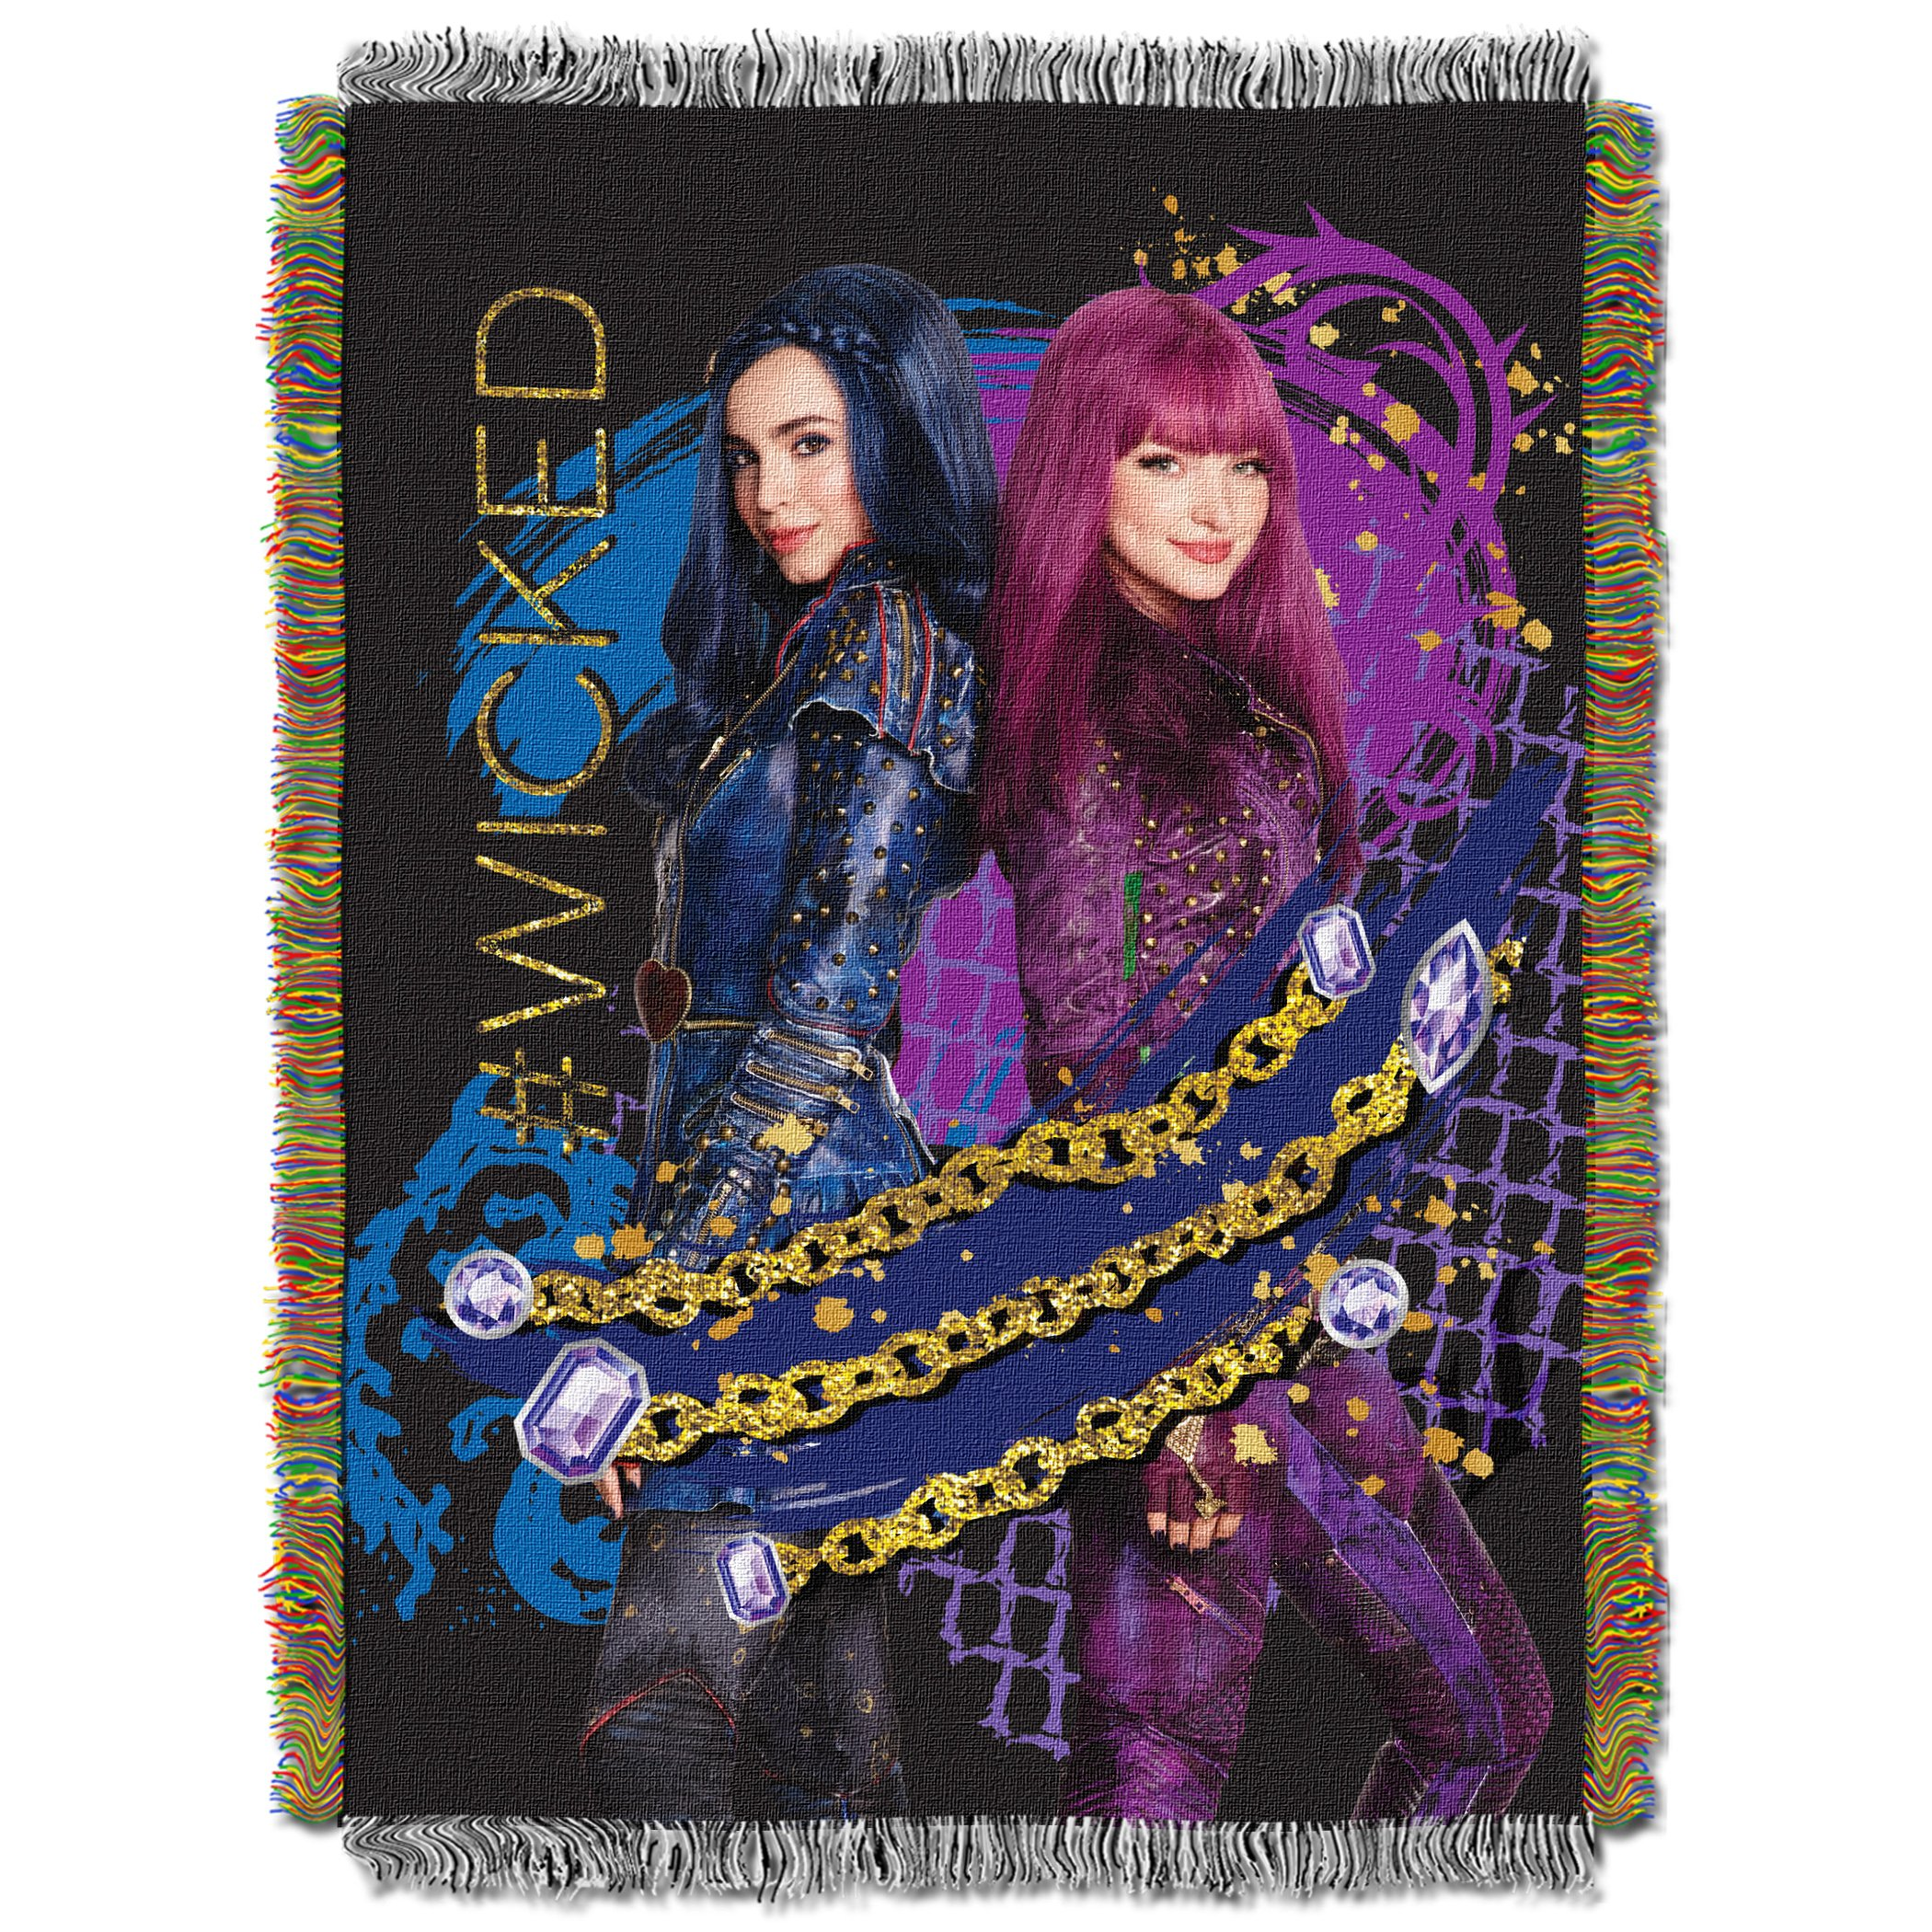 Disney's Descendants 2, ''Glitter Chains'' Woven Tapestry Throw Blanket, 48'' x 60'', Multi Color by Disney